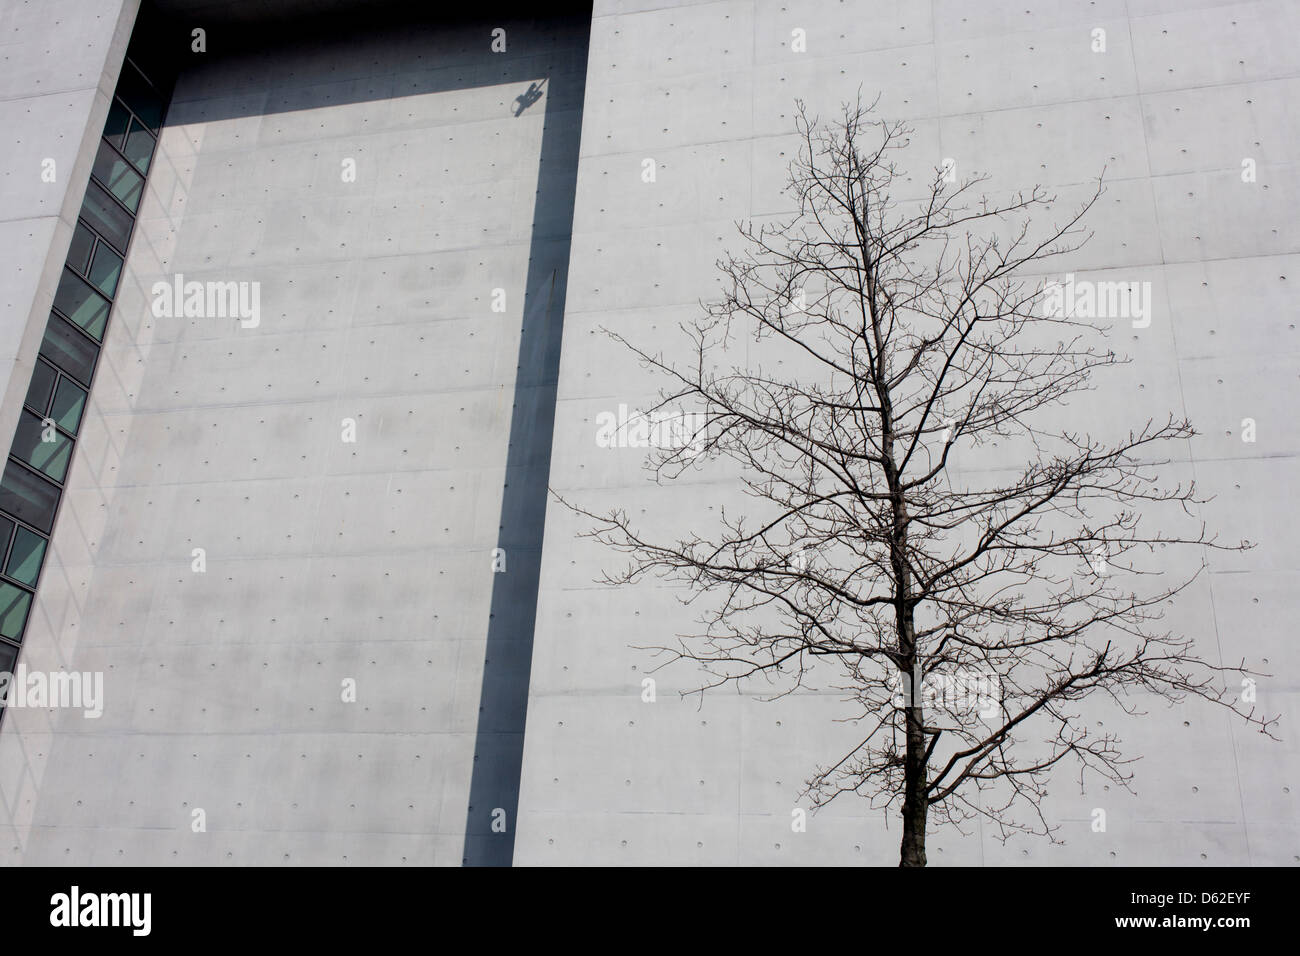 Architecture and design of Paul-Loeb-Haus in Berlin Mitte, one of ...